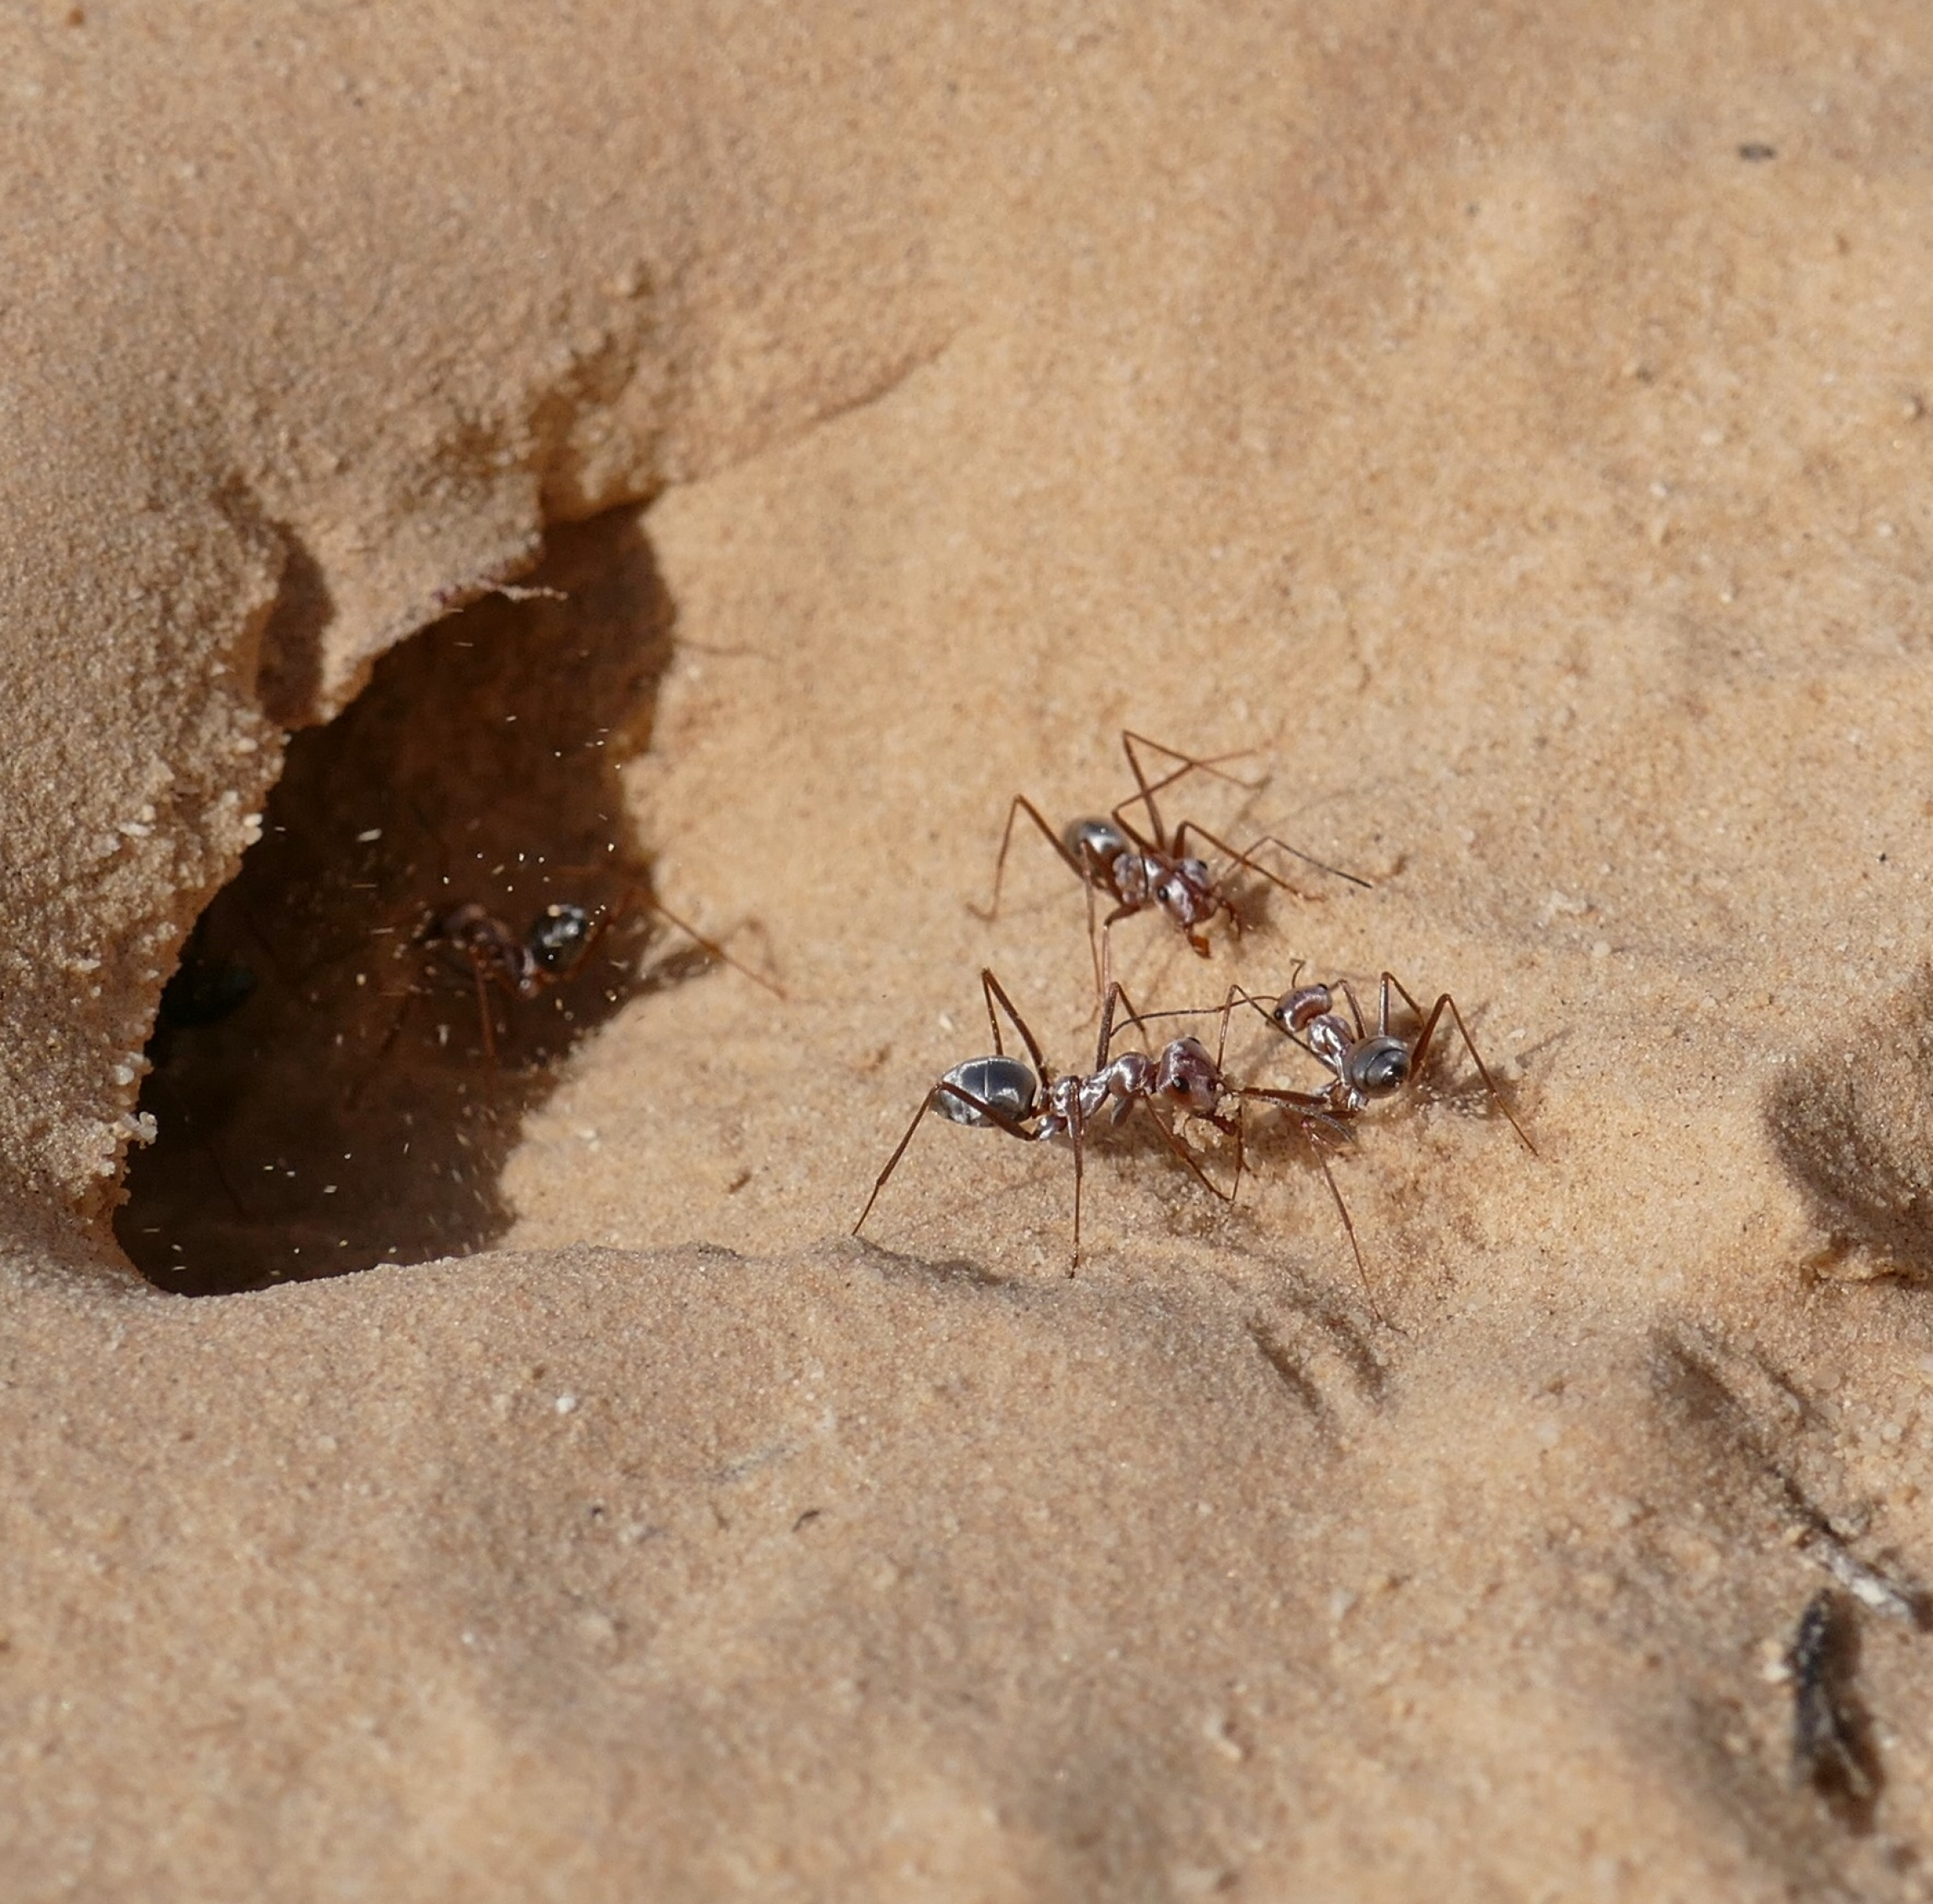 Close up of ants near entrance to nest in yellow sand